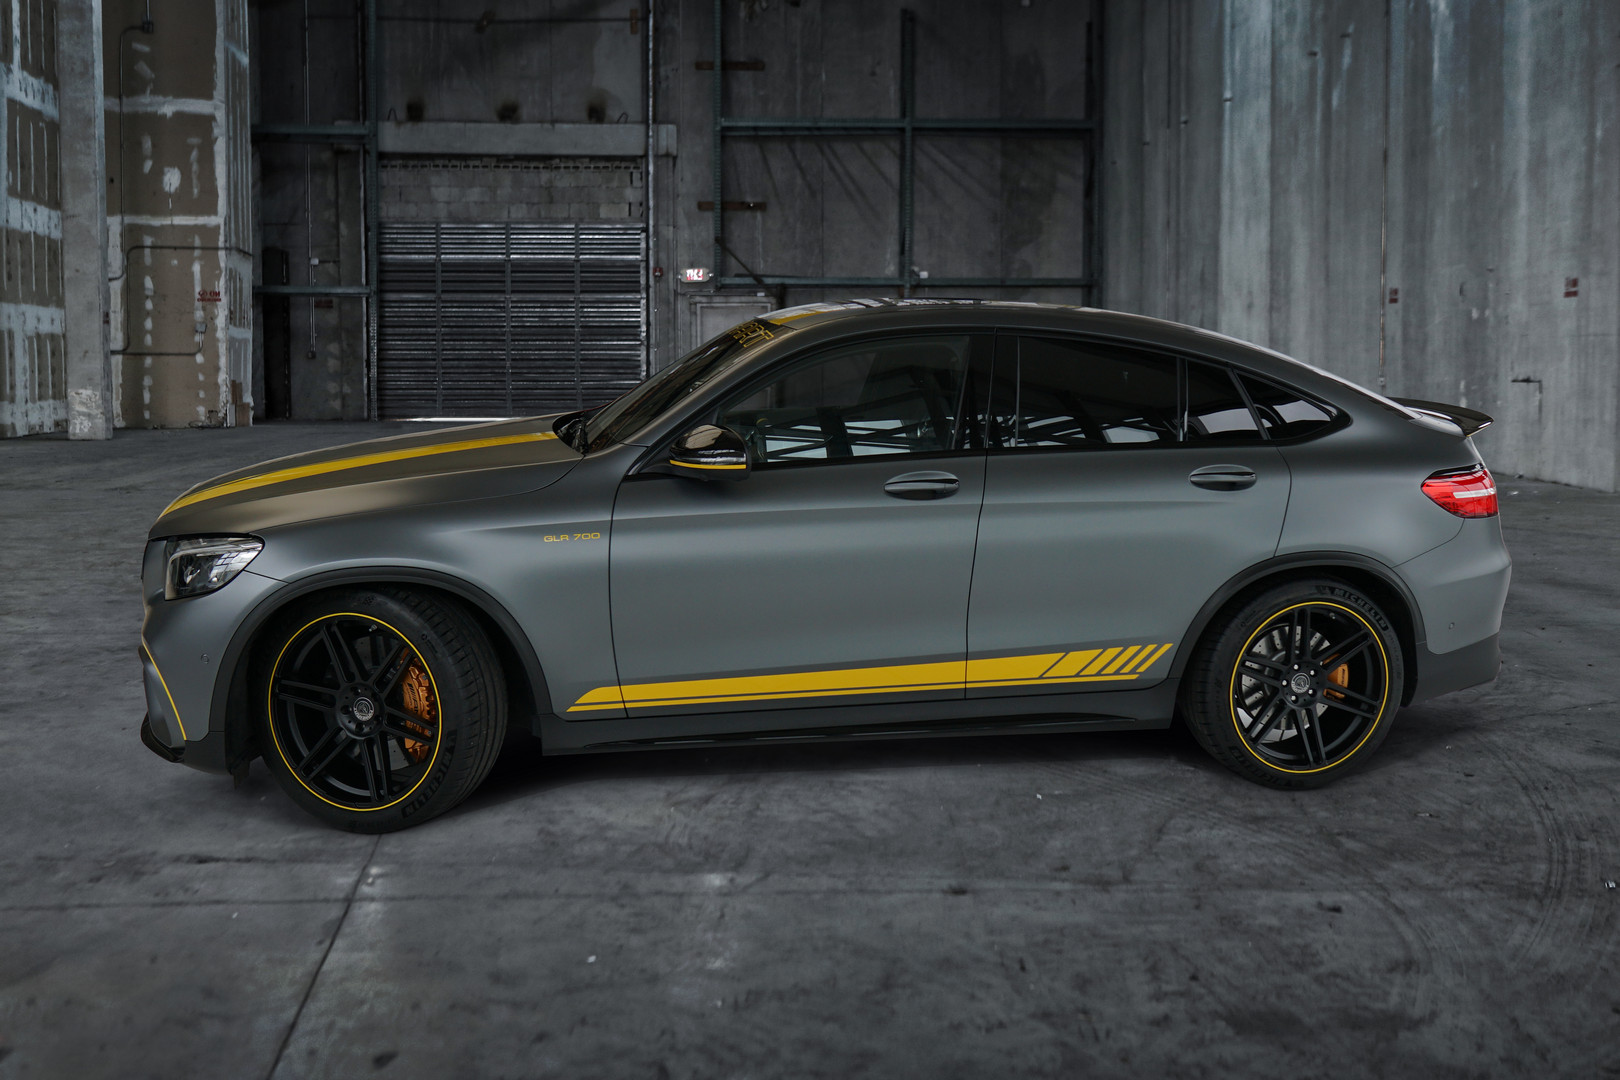 700hp Mercedes-AMG GLC 63 S Coupe